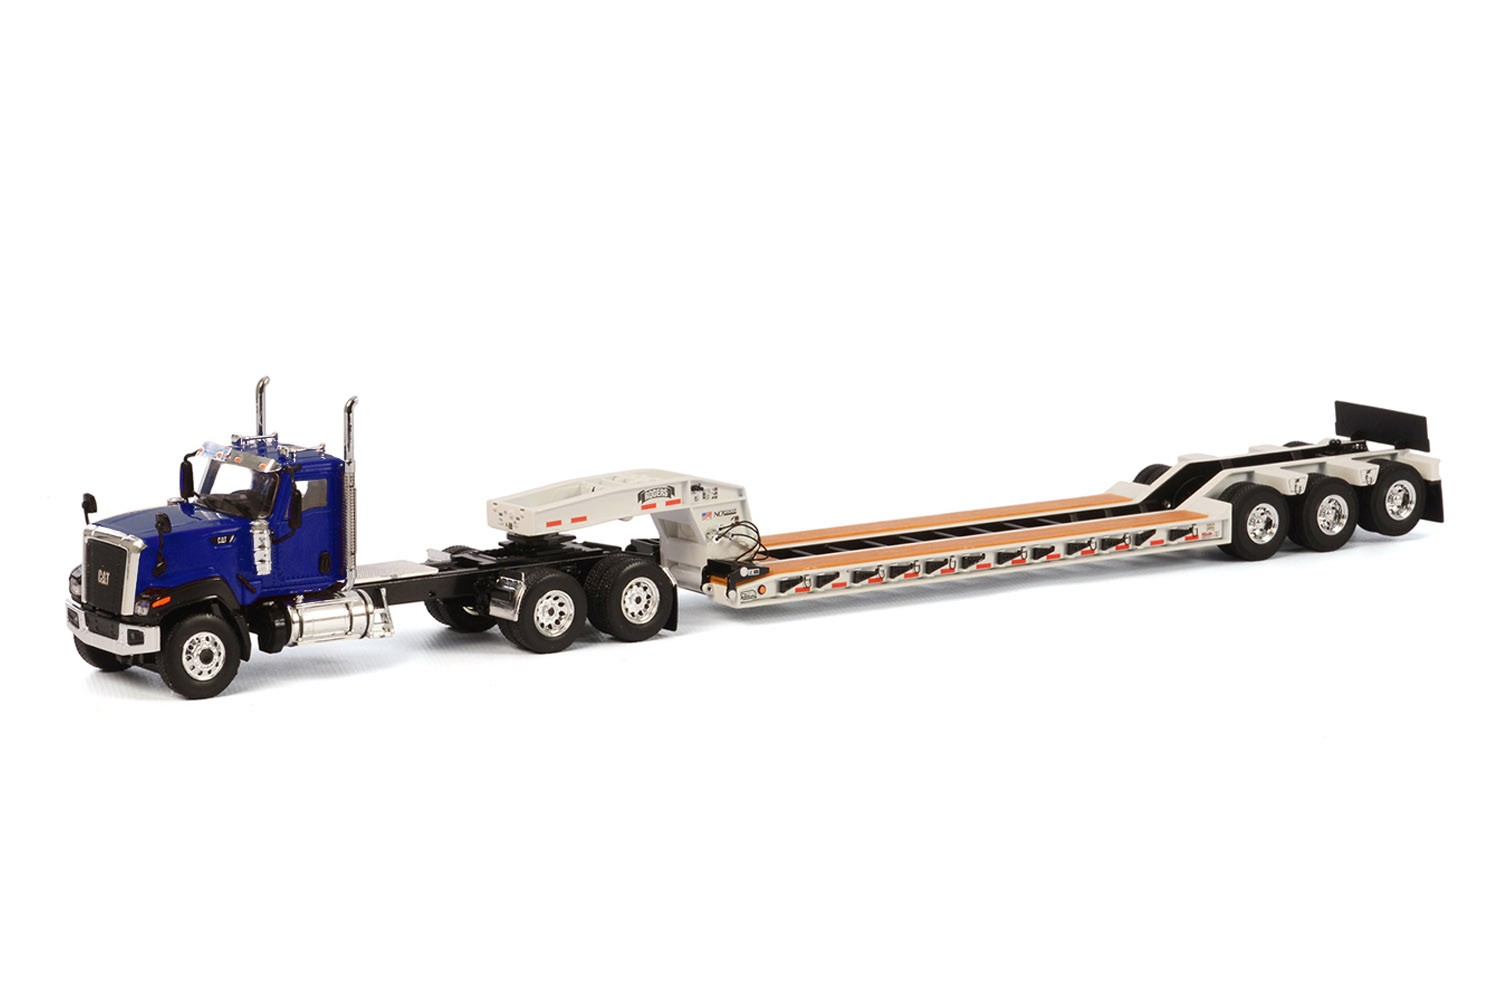 Caterpillar CT680 with 3 axle lowboy-Blue/White